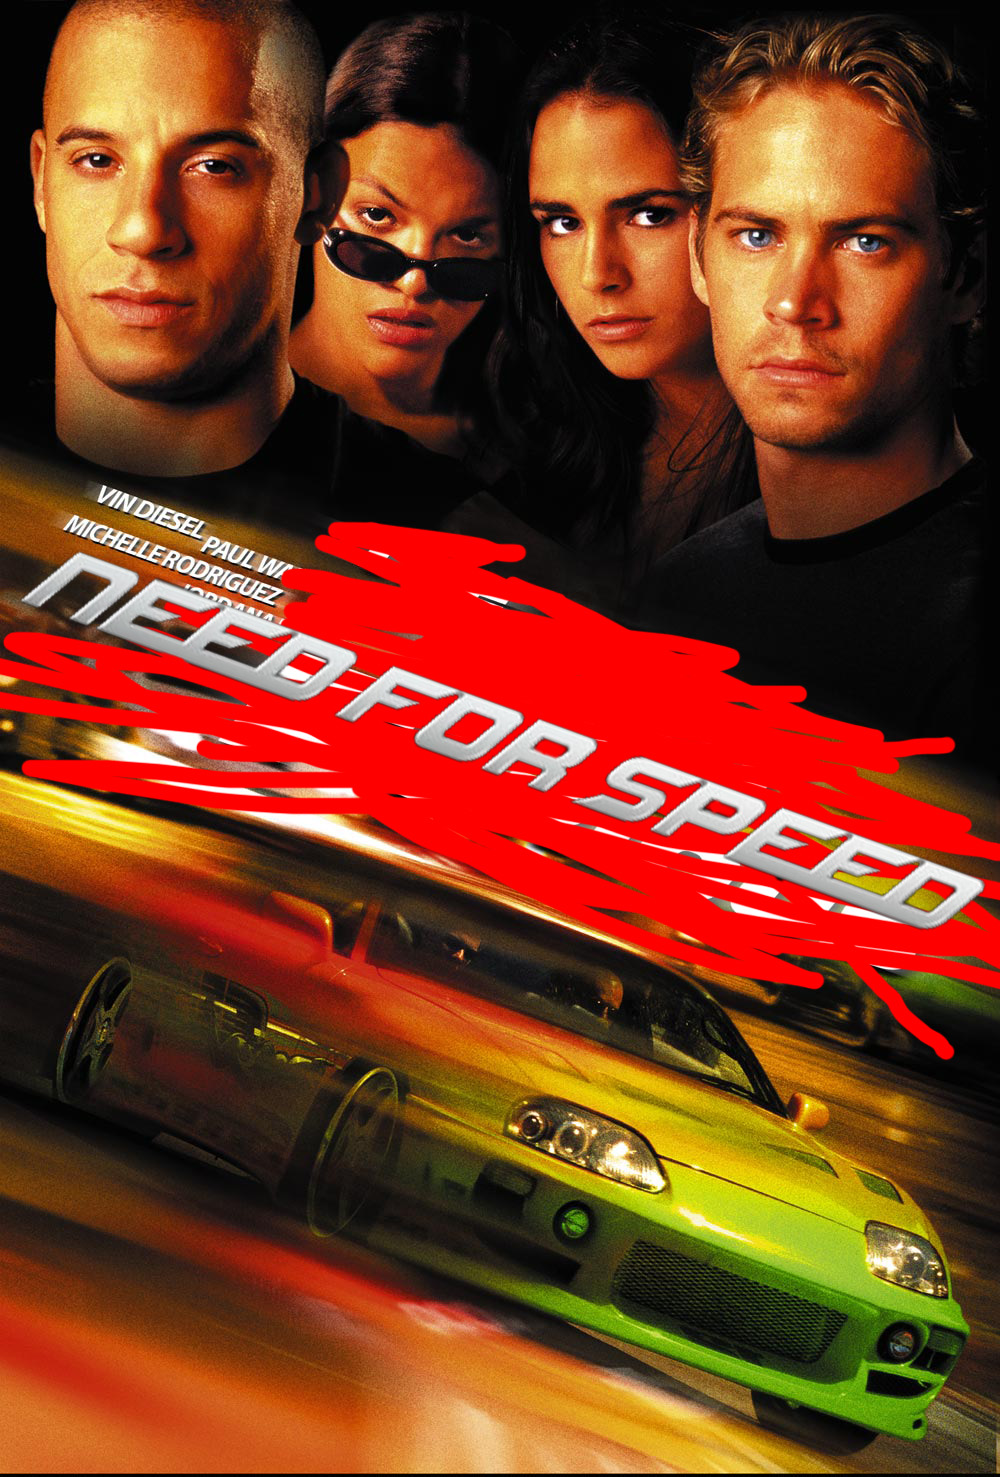 watch online movie need for speed trailer